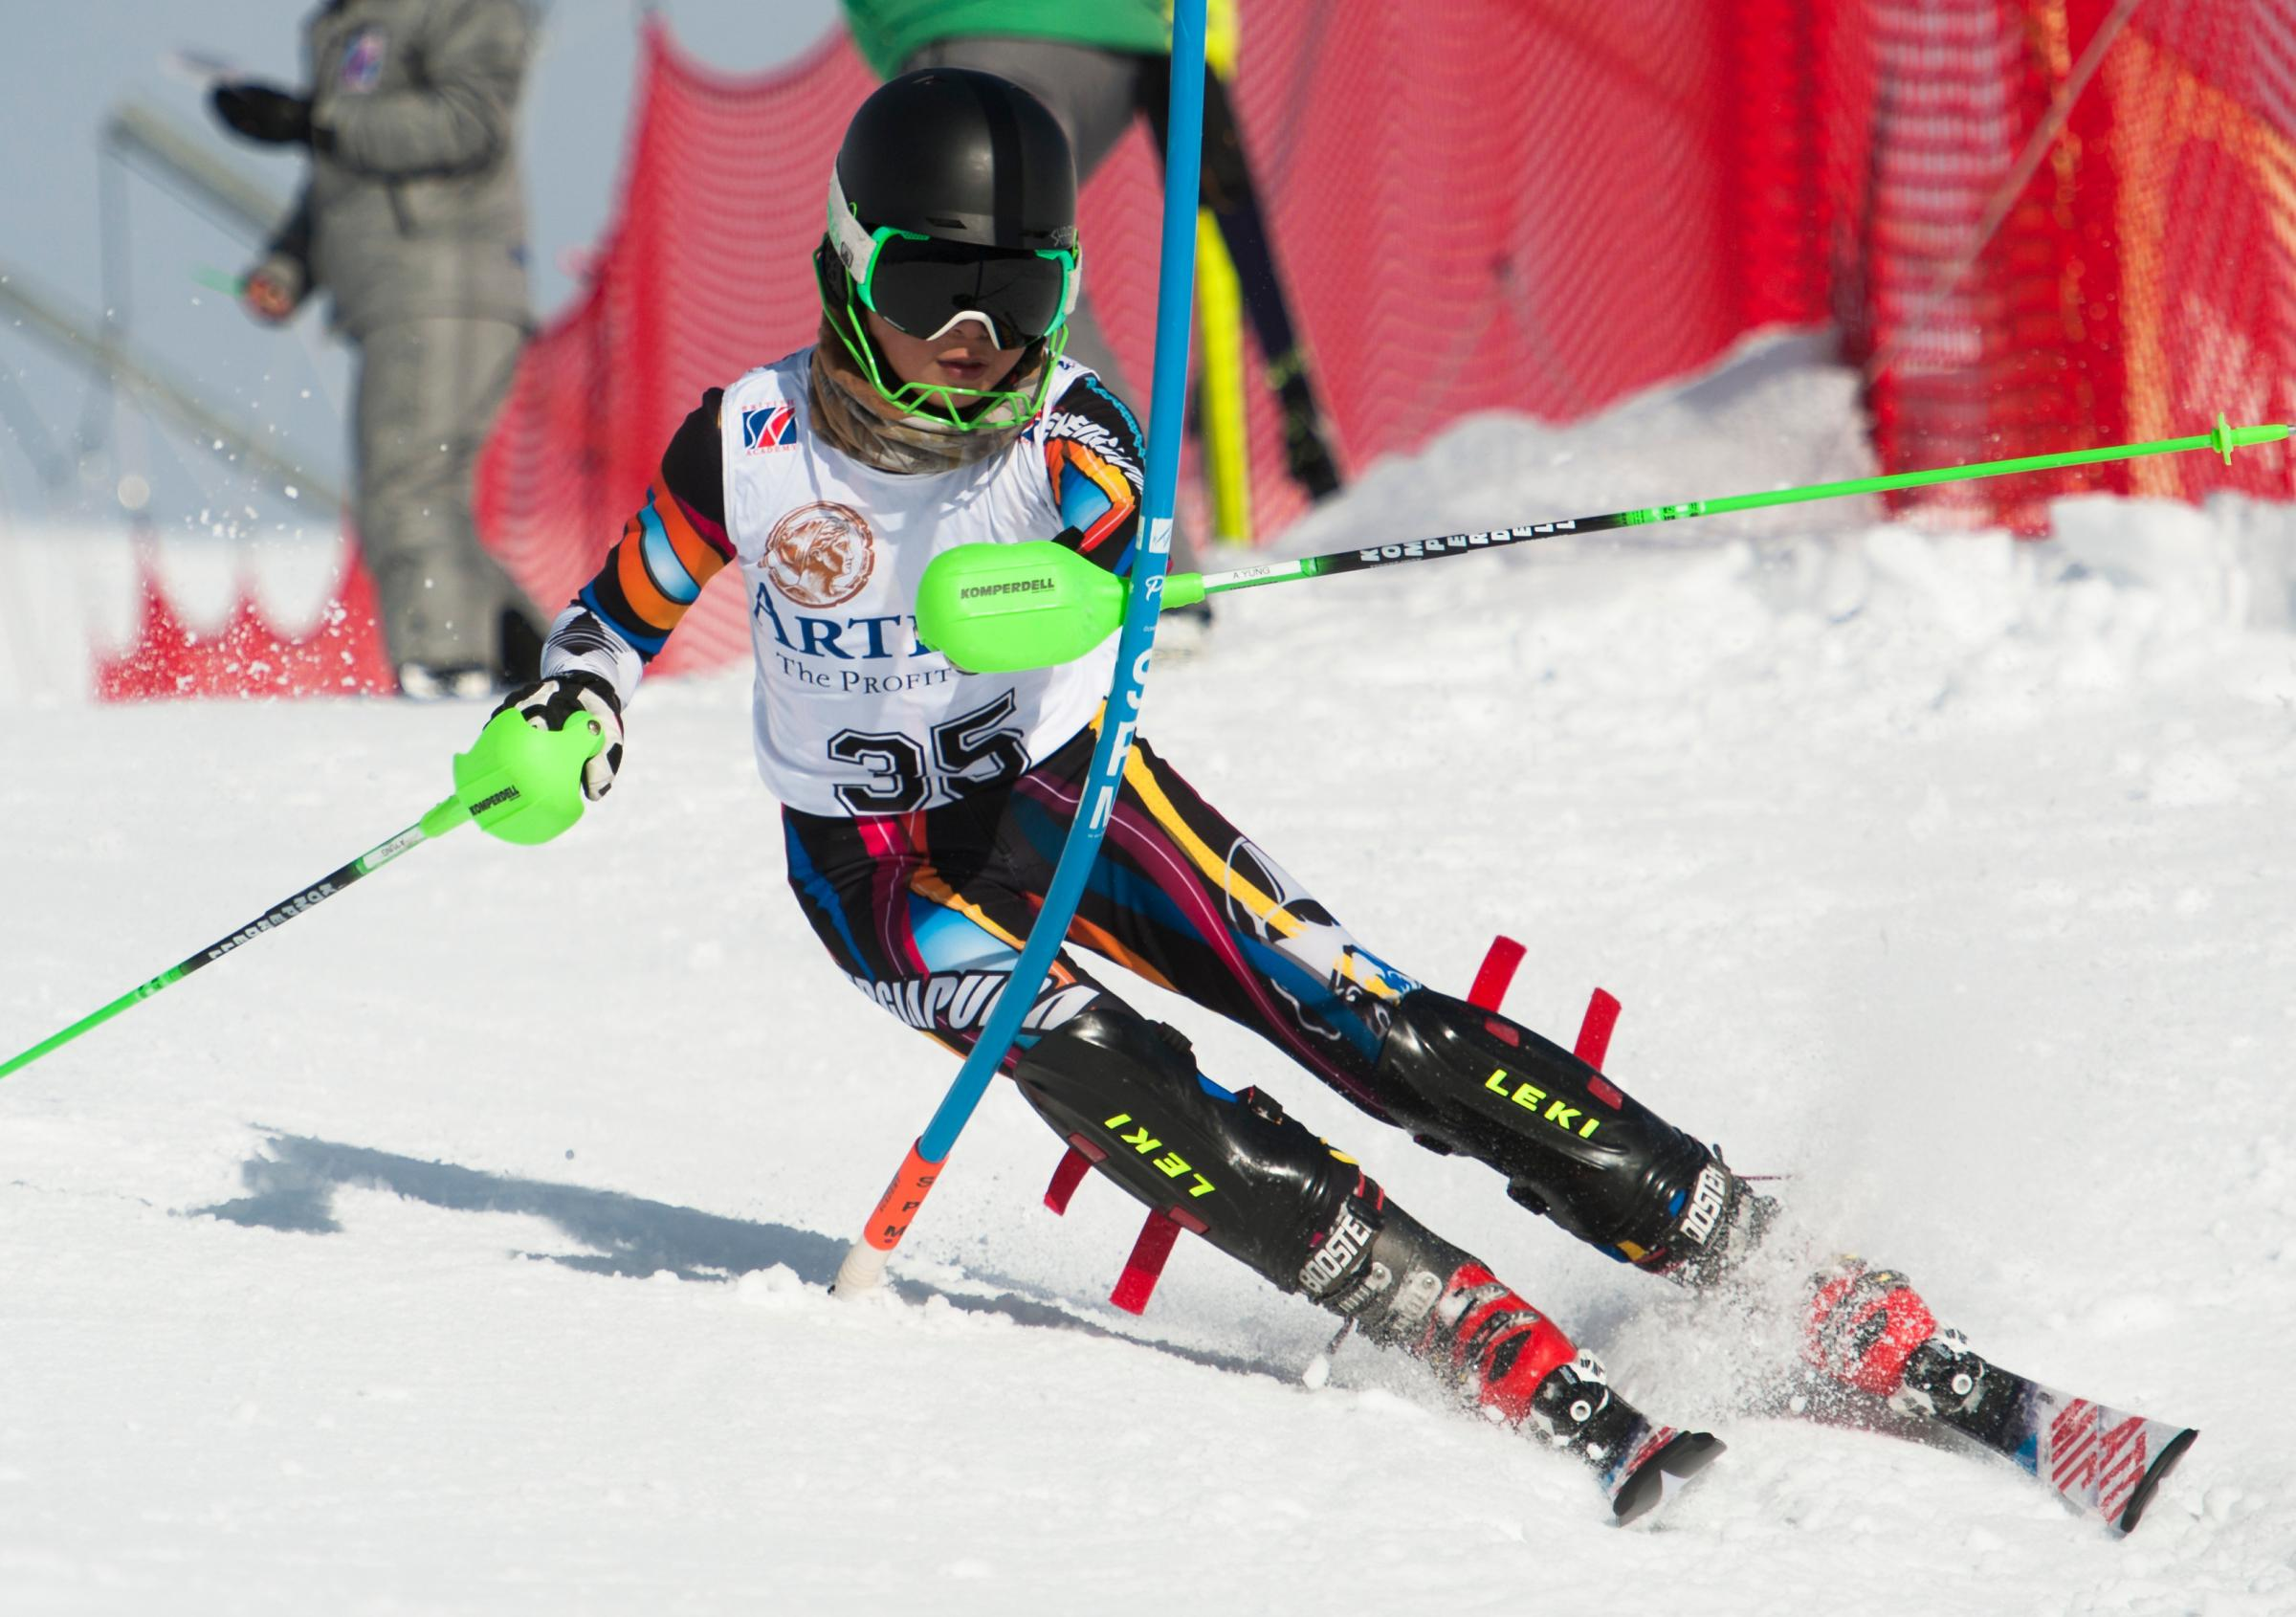 YUNG TALENT: Oxford's Adrian Yung shines on the slopes in Italy